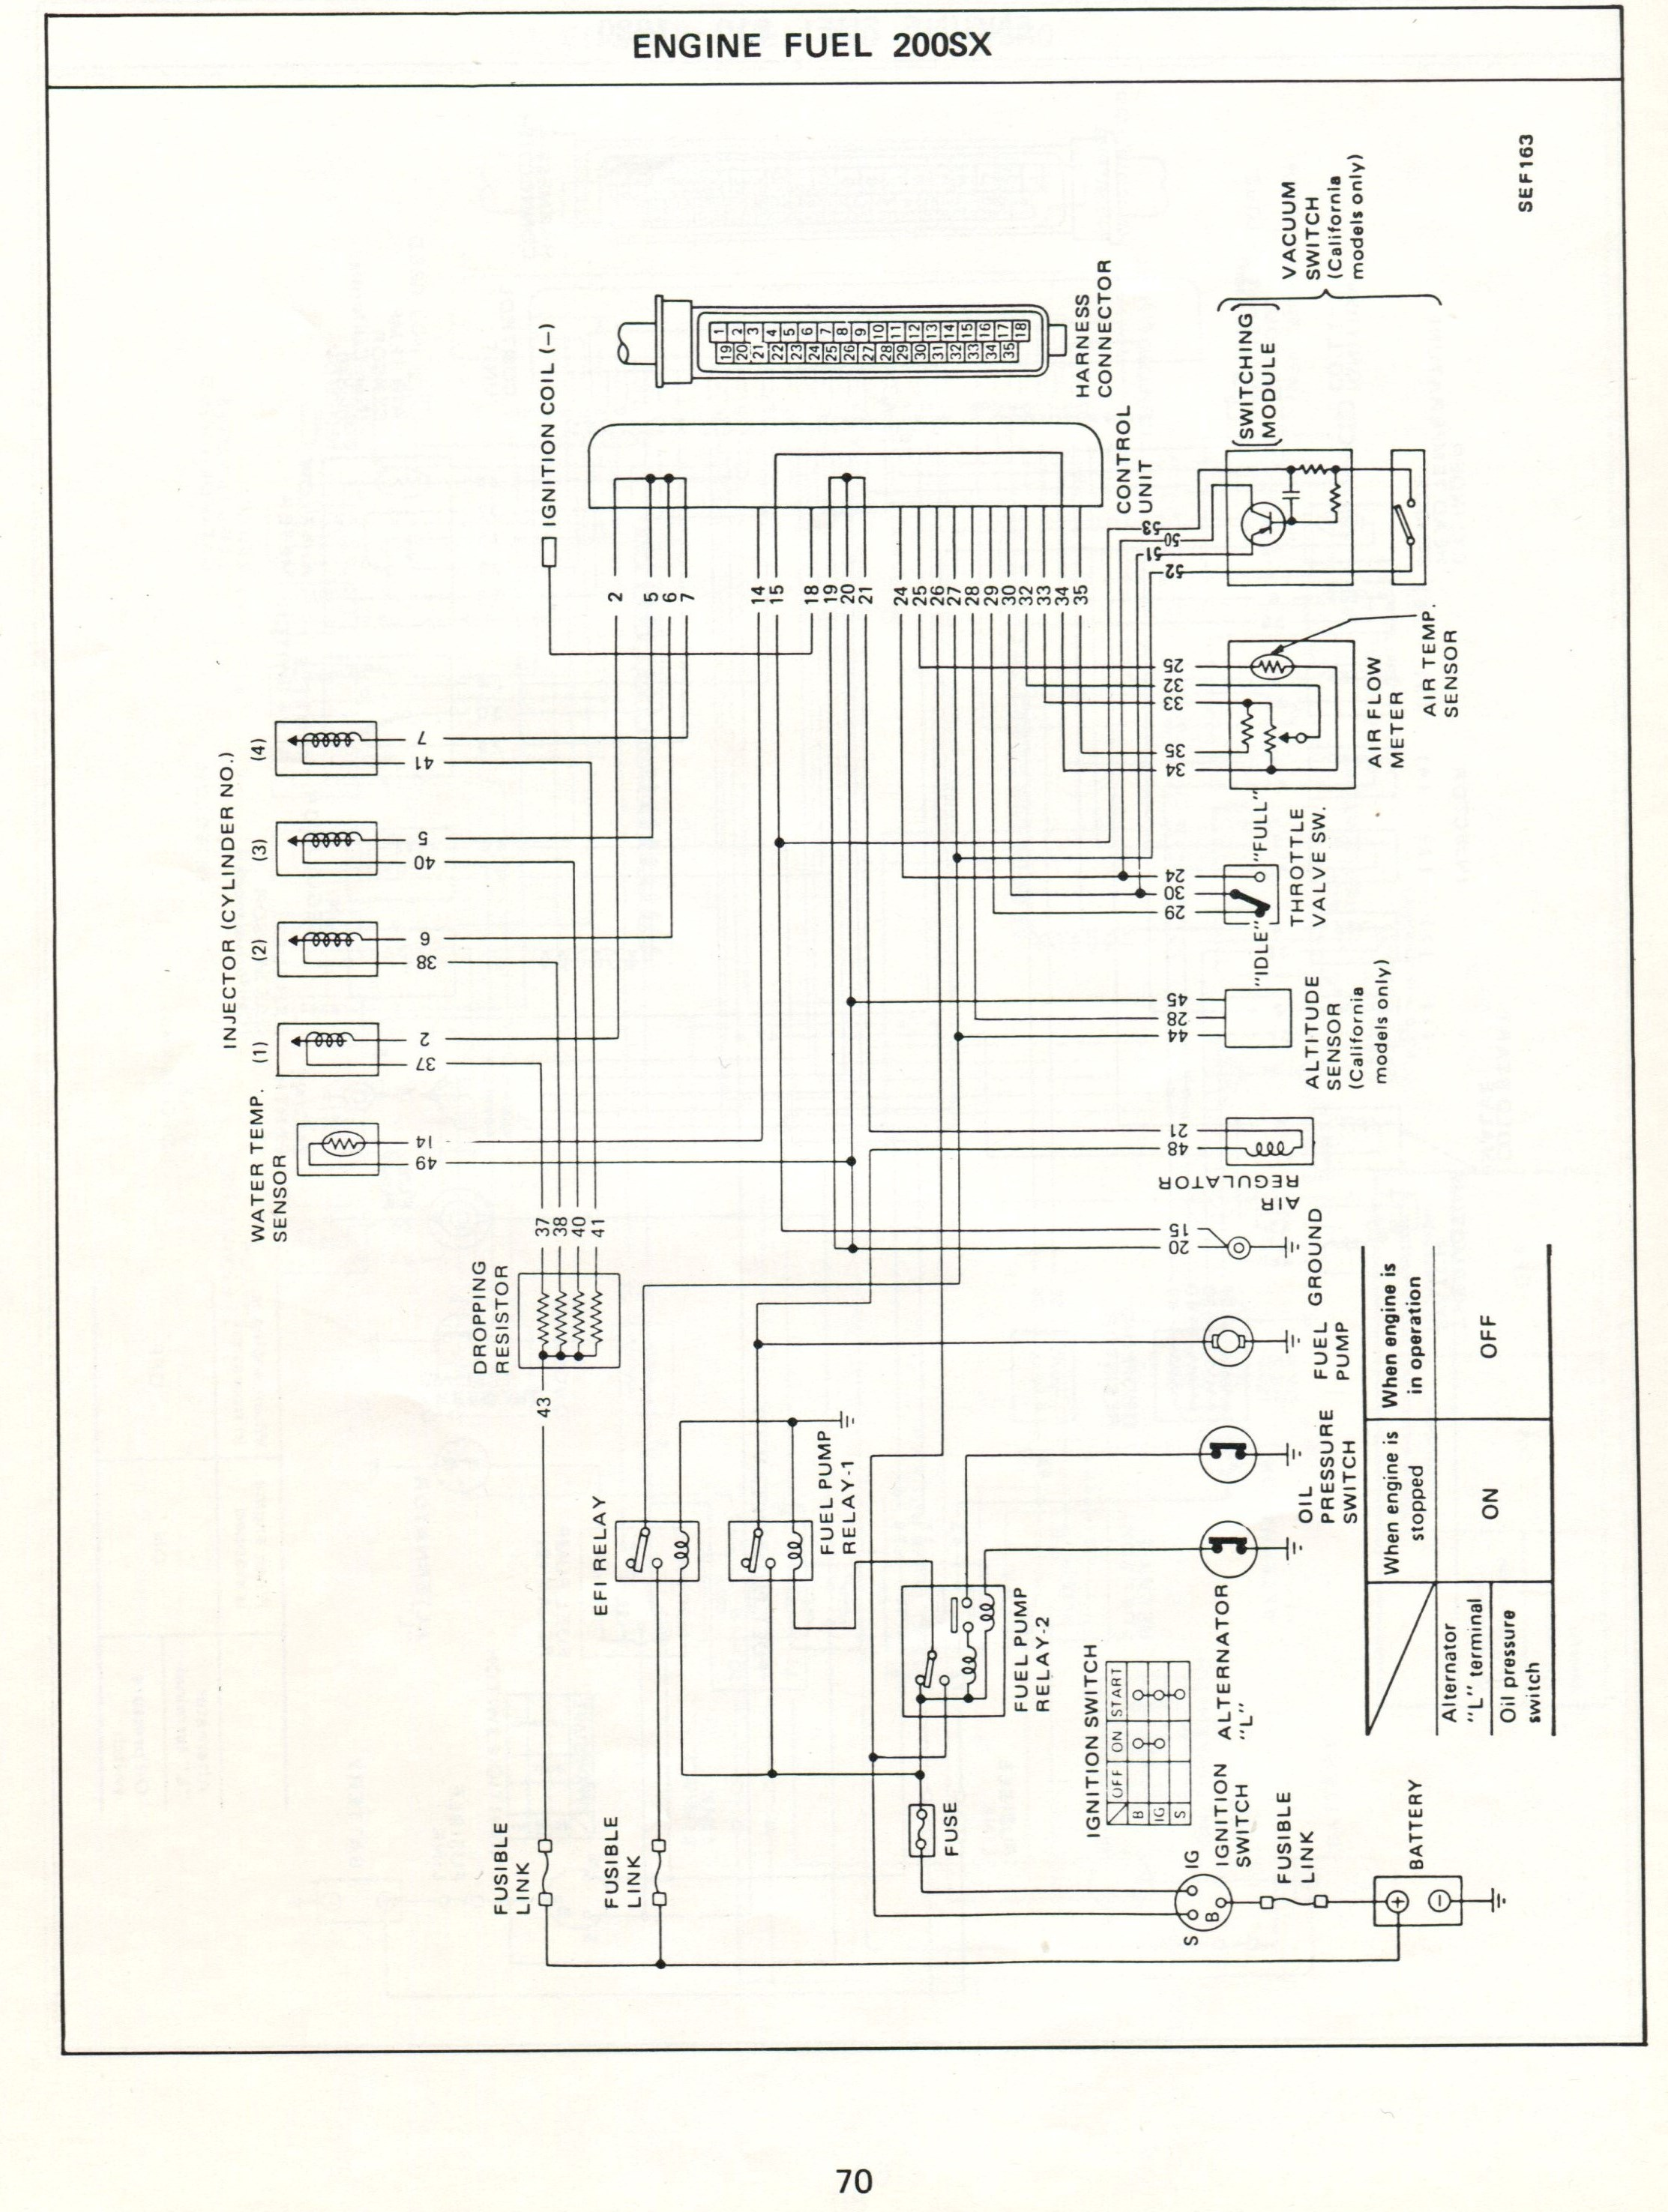 Datsun Electronic Fuel Injection - Wiring Diagrams